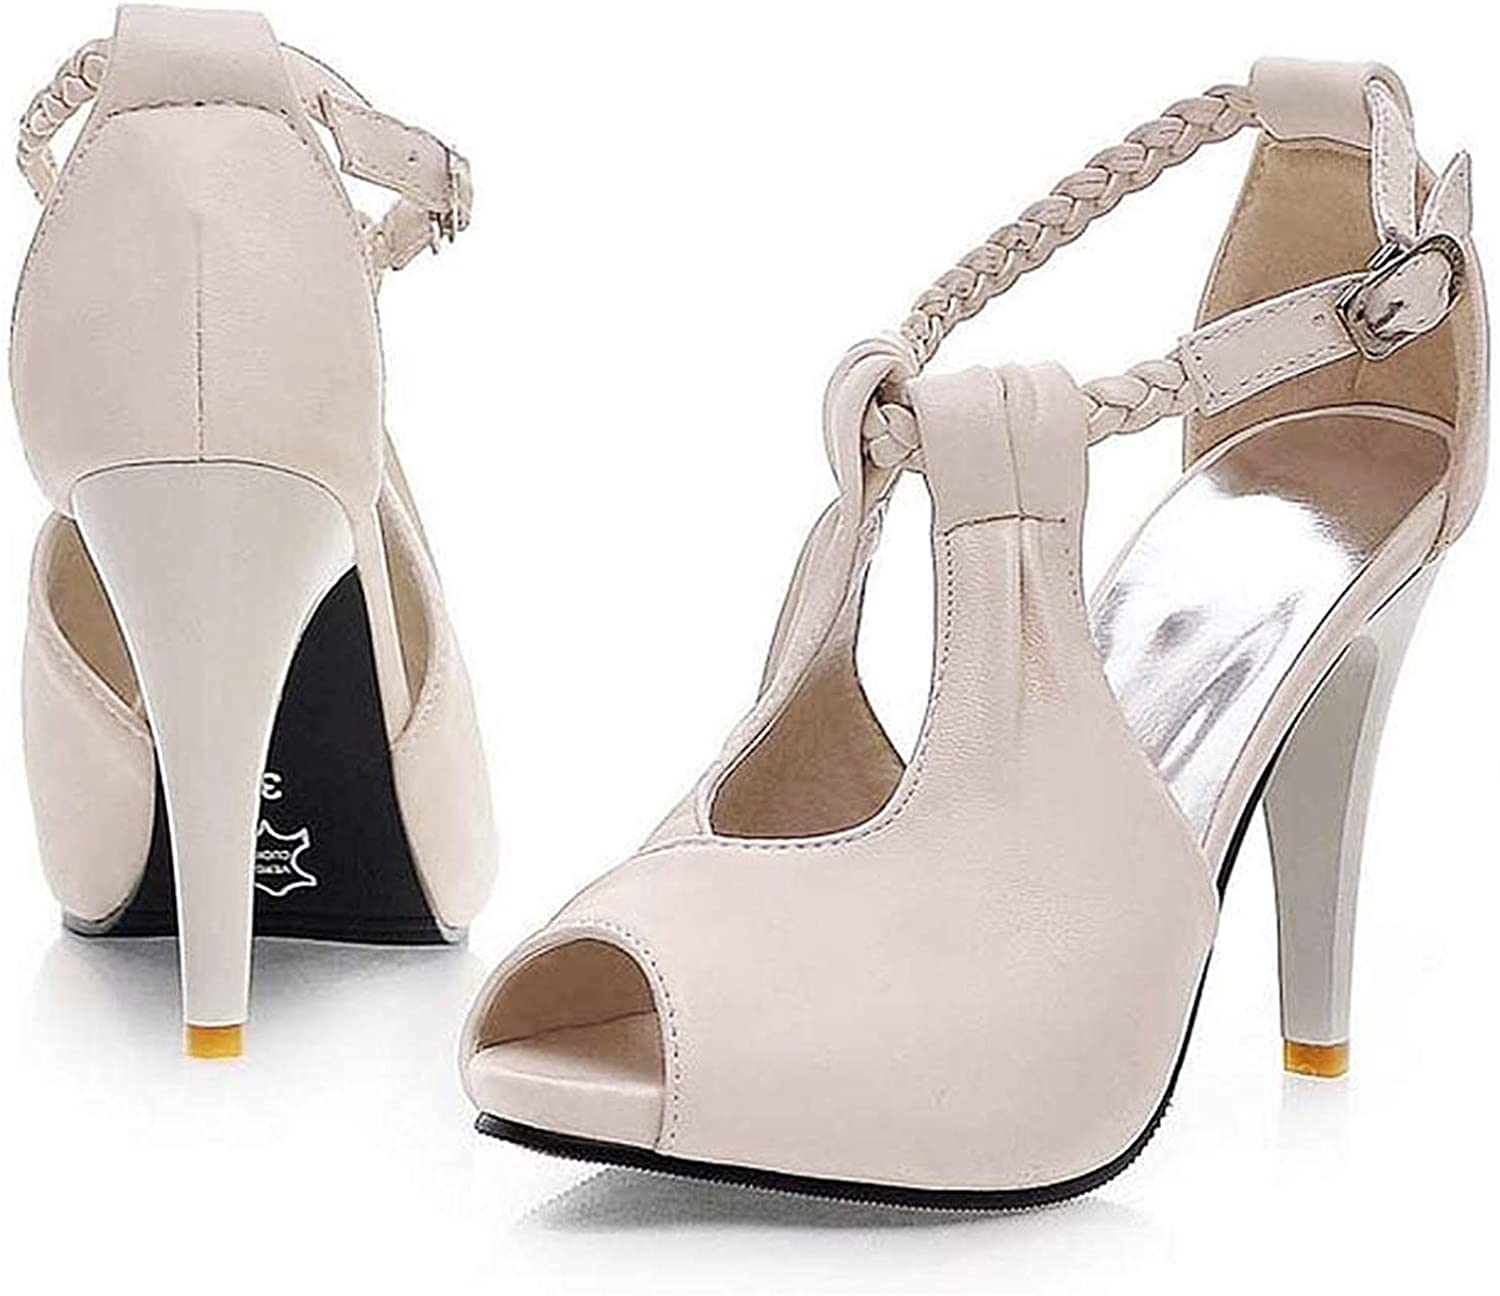 Womens Wedding Ankle Strap Platform Pumps High Wedge Heels Mary Janes Shoes 4-10